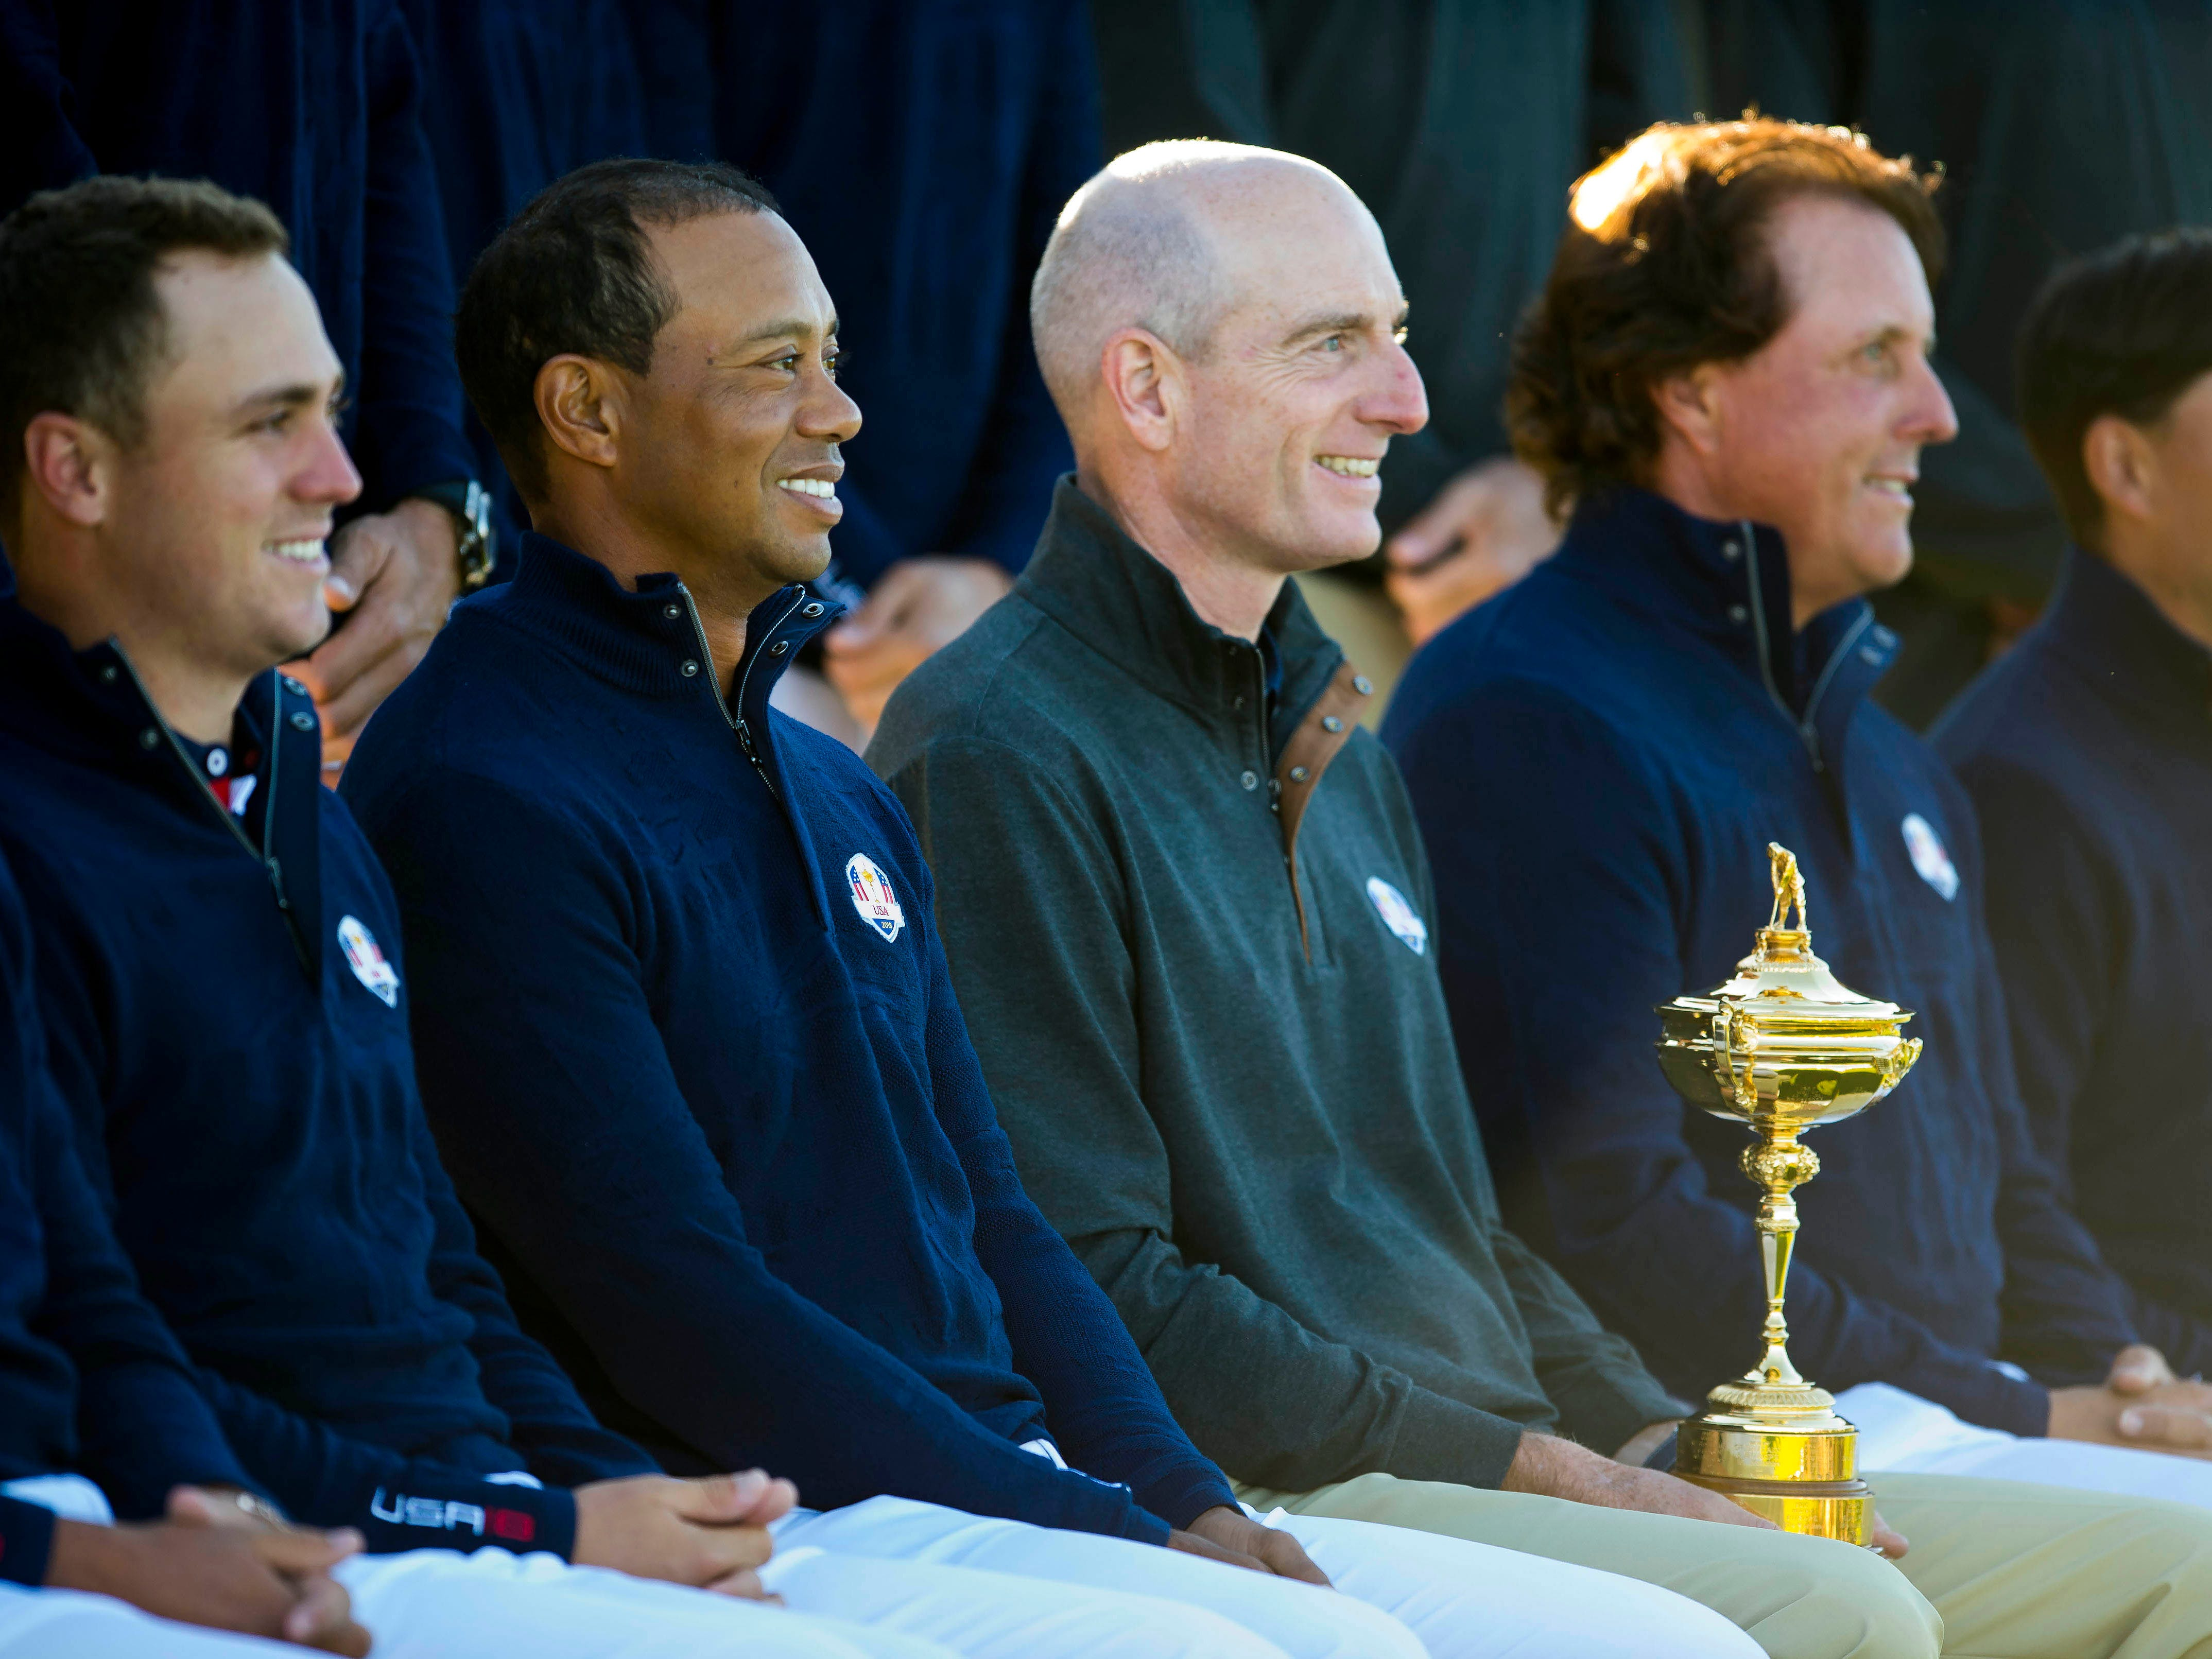 American Ryder Cup captain Jim Furyk and team members with the Ryder cup at the American team photo session.